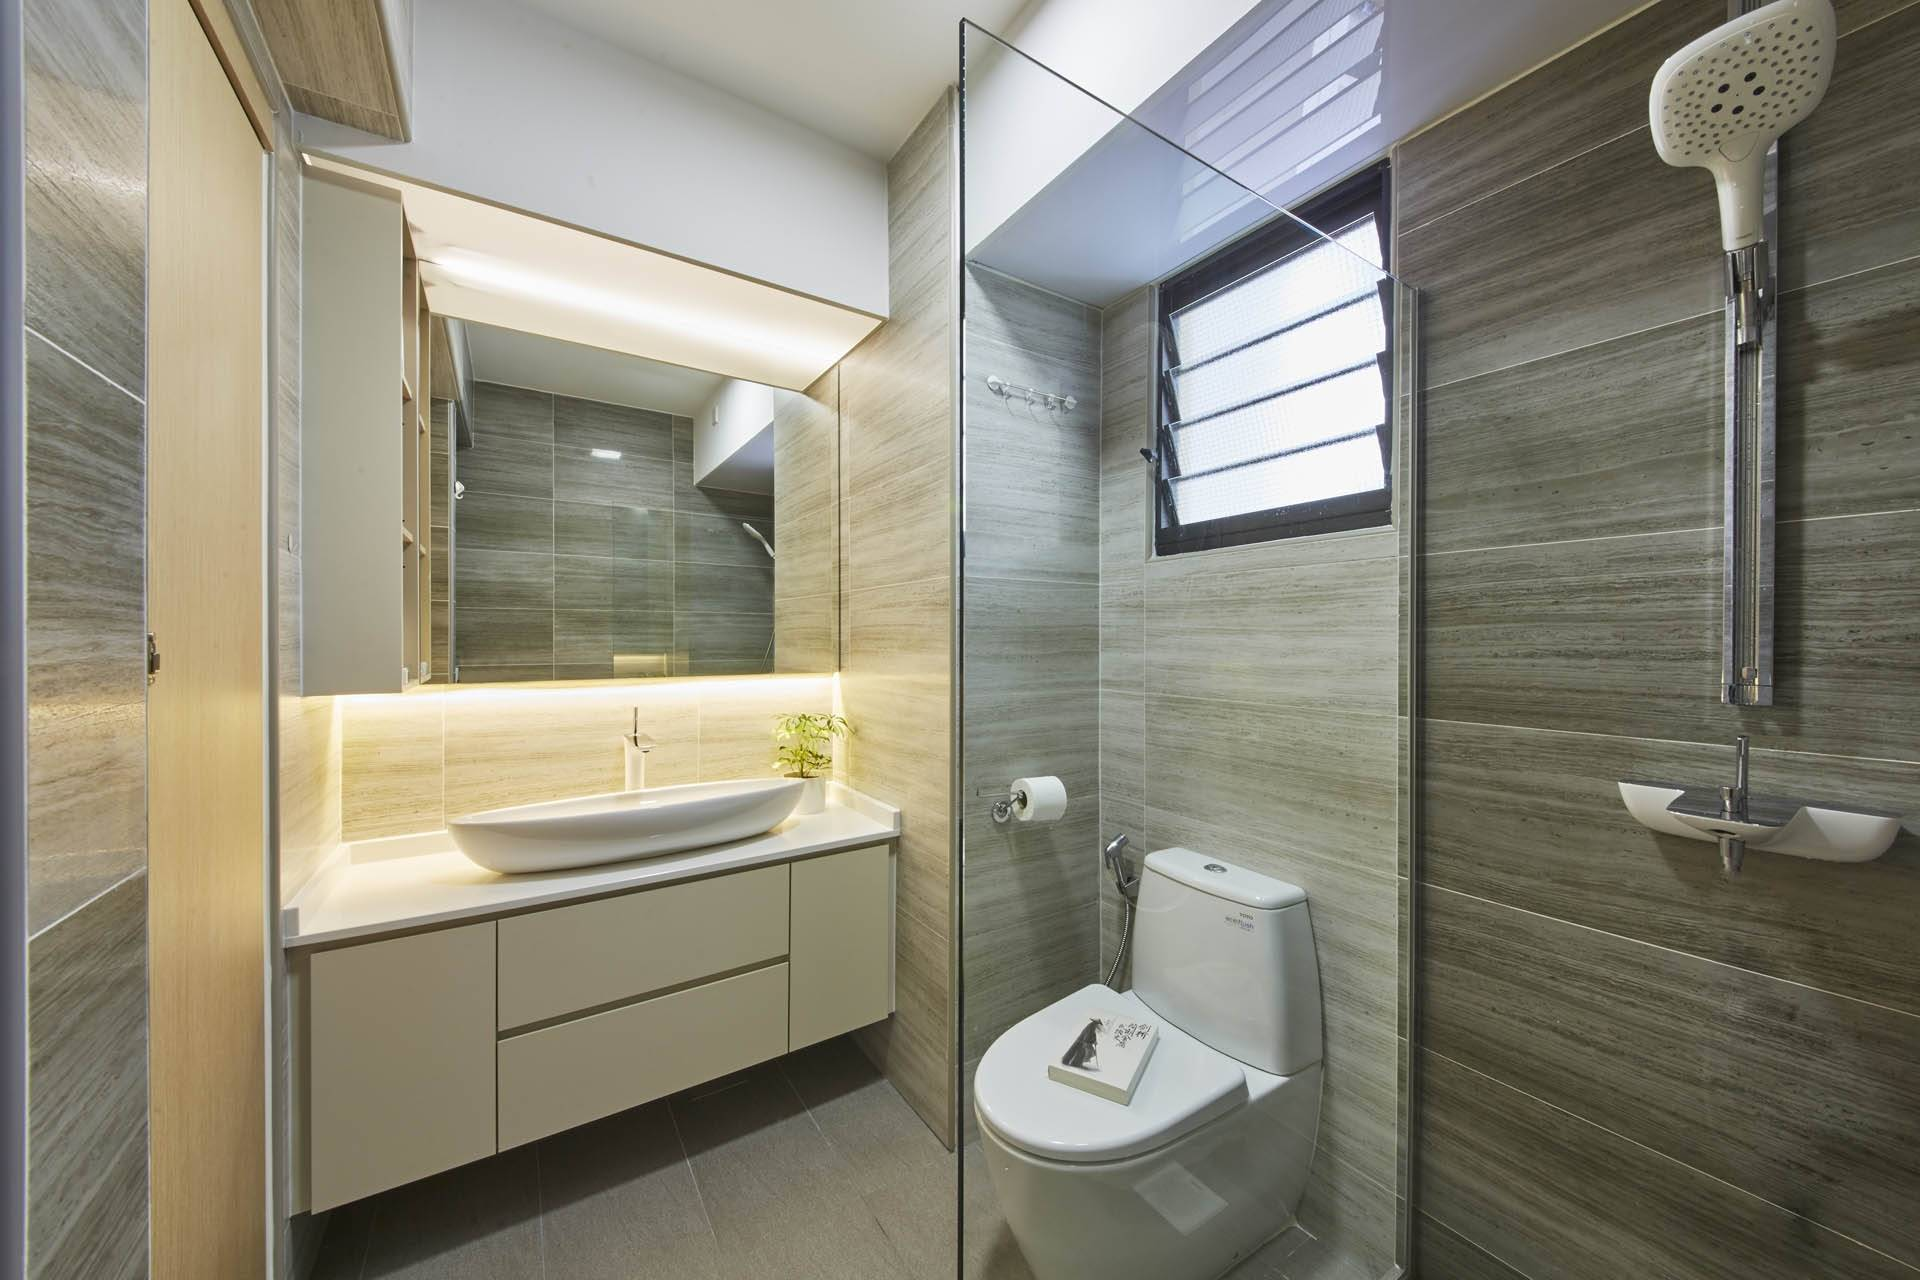 Hdb bathroom design for Bathroom decor styles